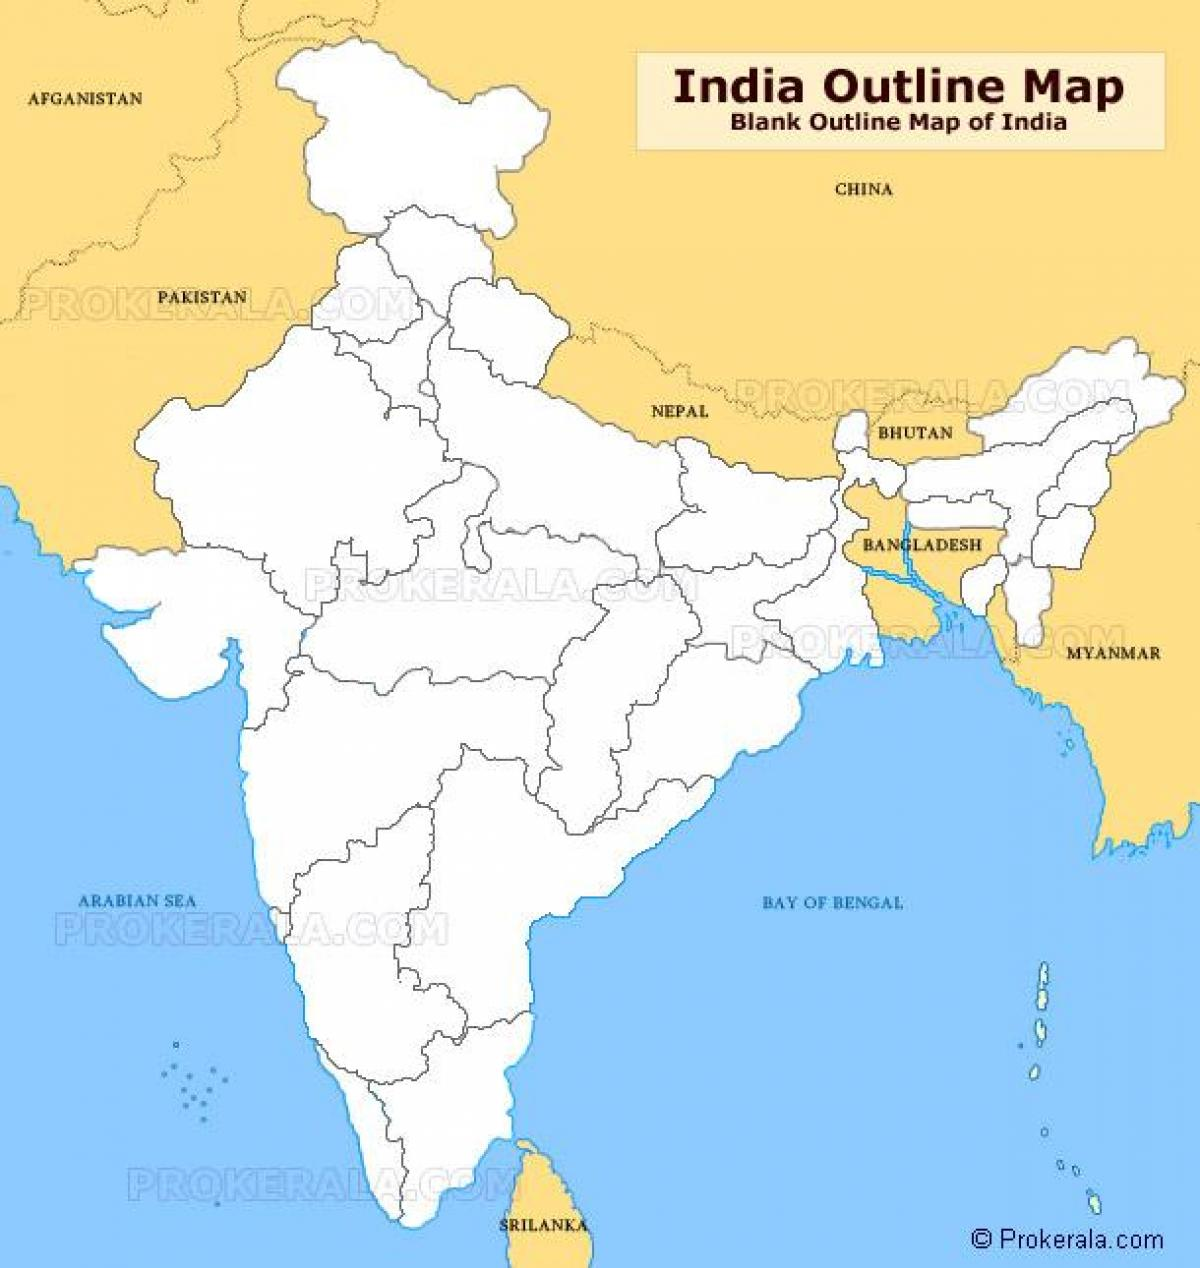 Blank Outline Map Of India